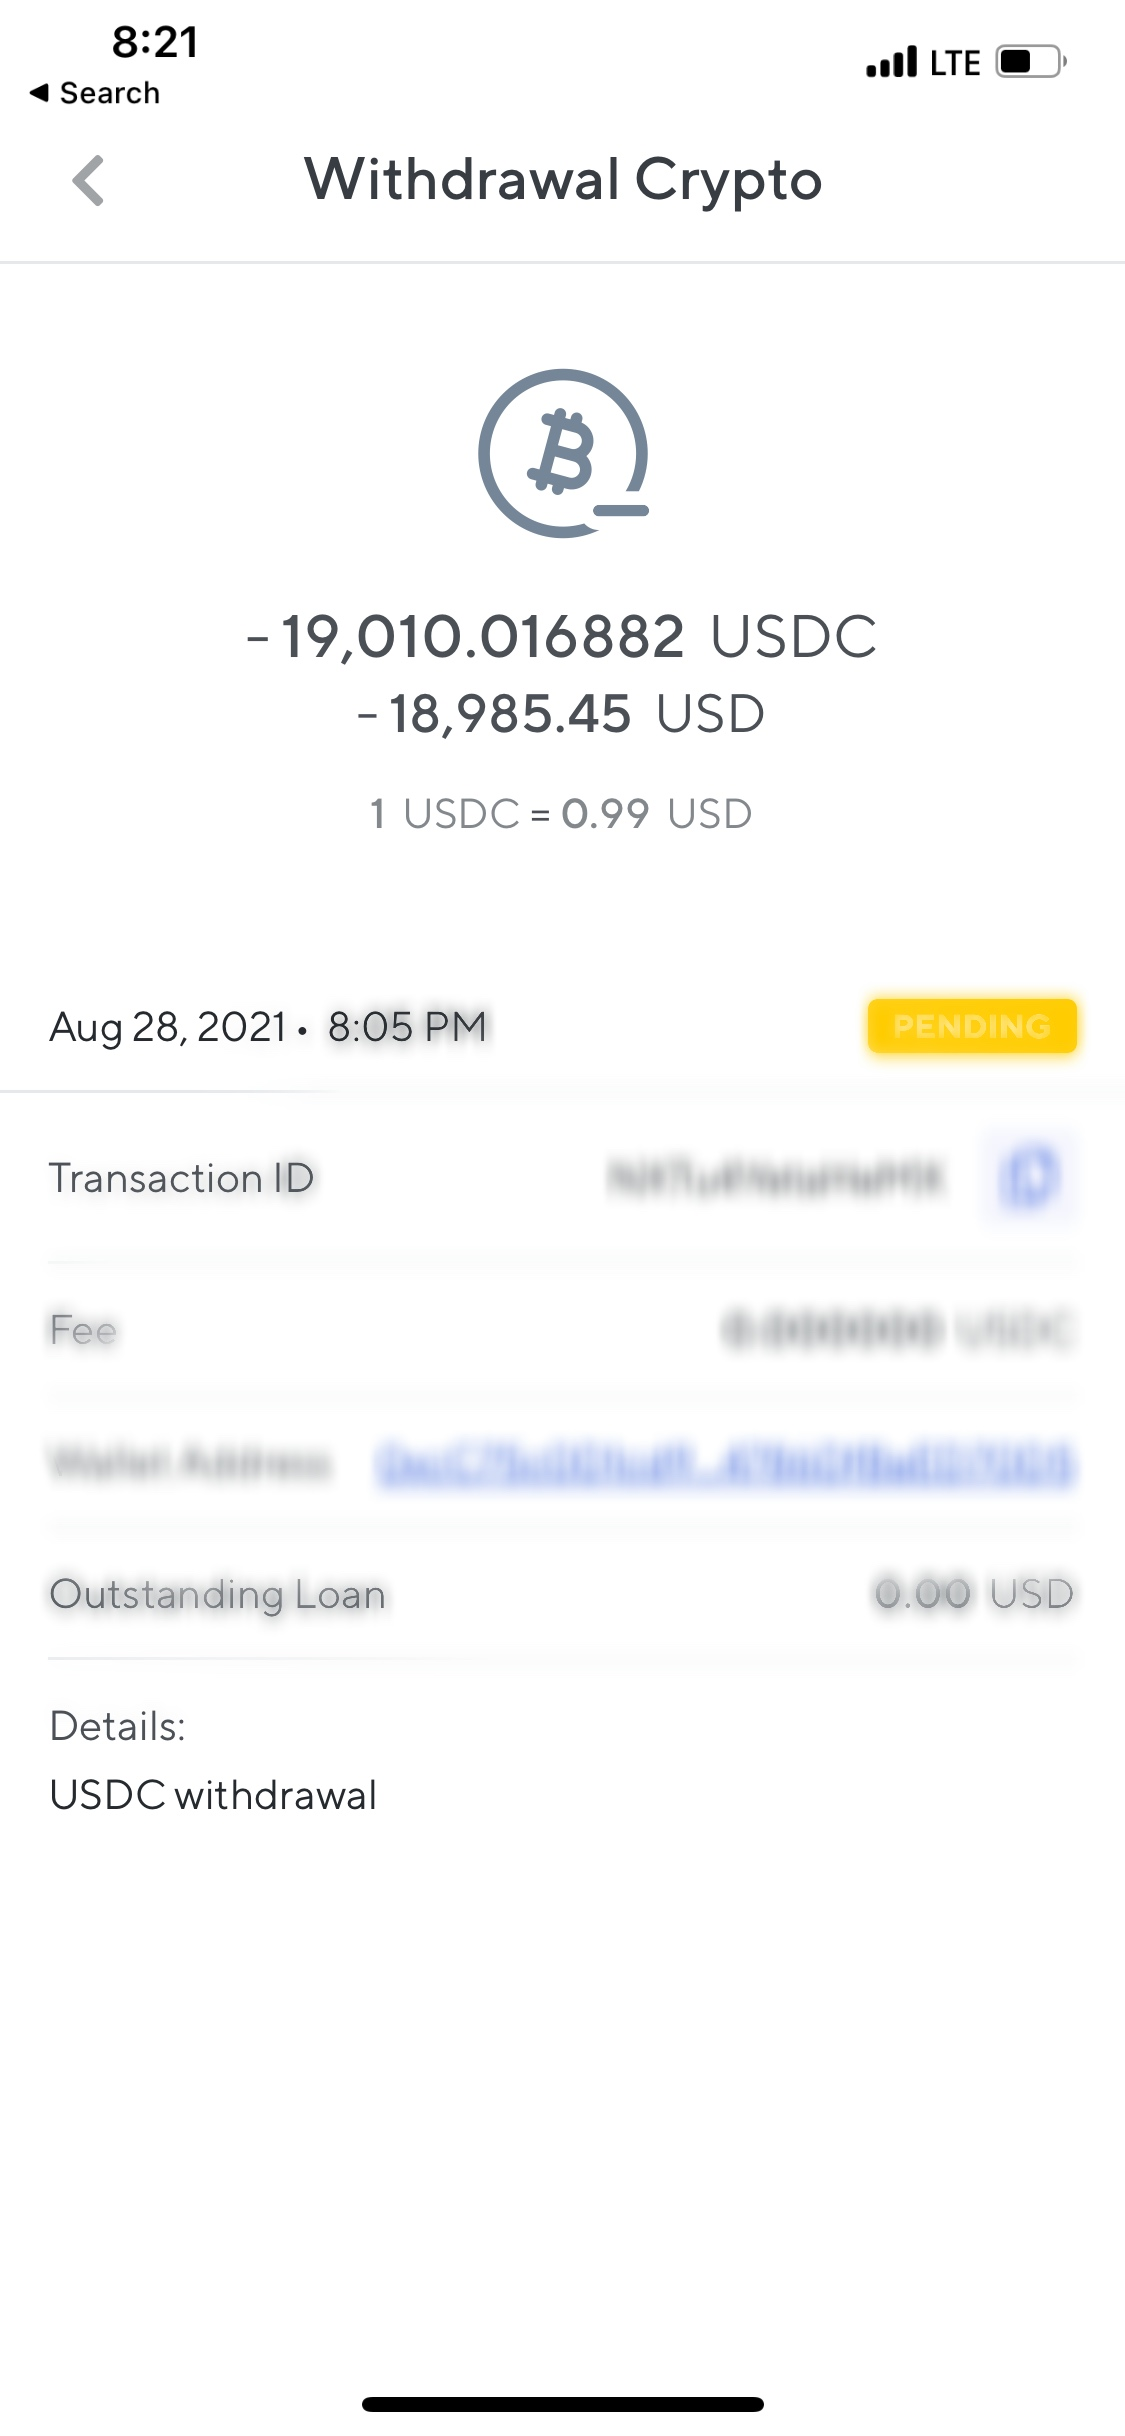 Nexo will not complete my transfer